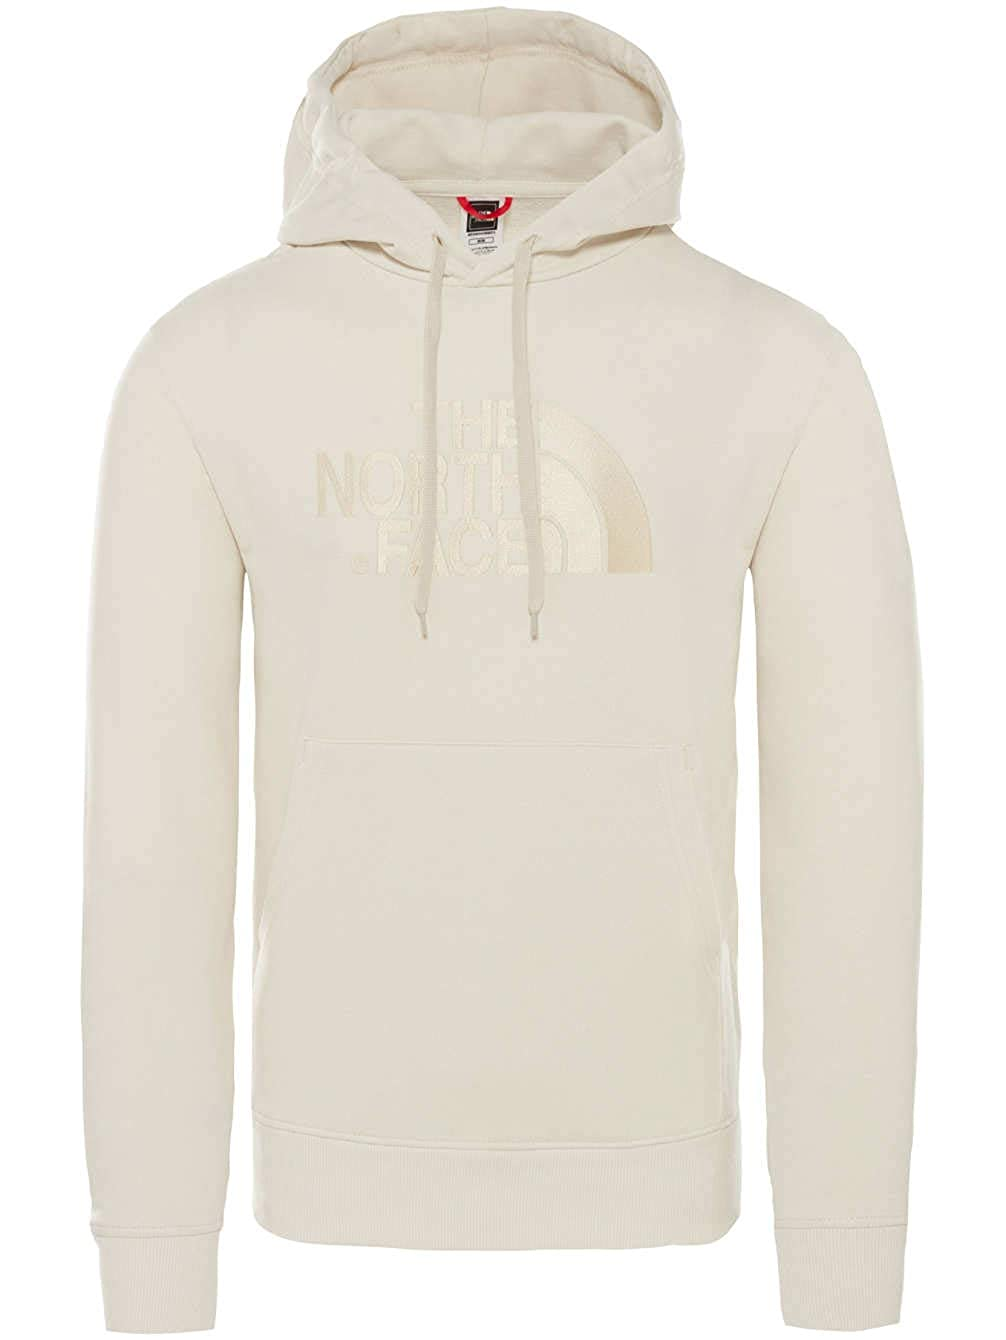 bfbc14d4d THE NORTH FACE Men's Light Drew Peak Pullover Eu Hoodie